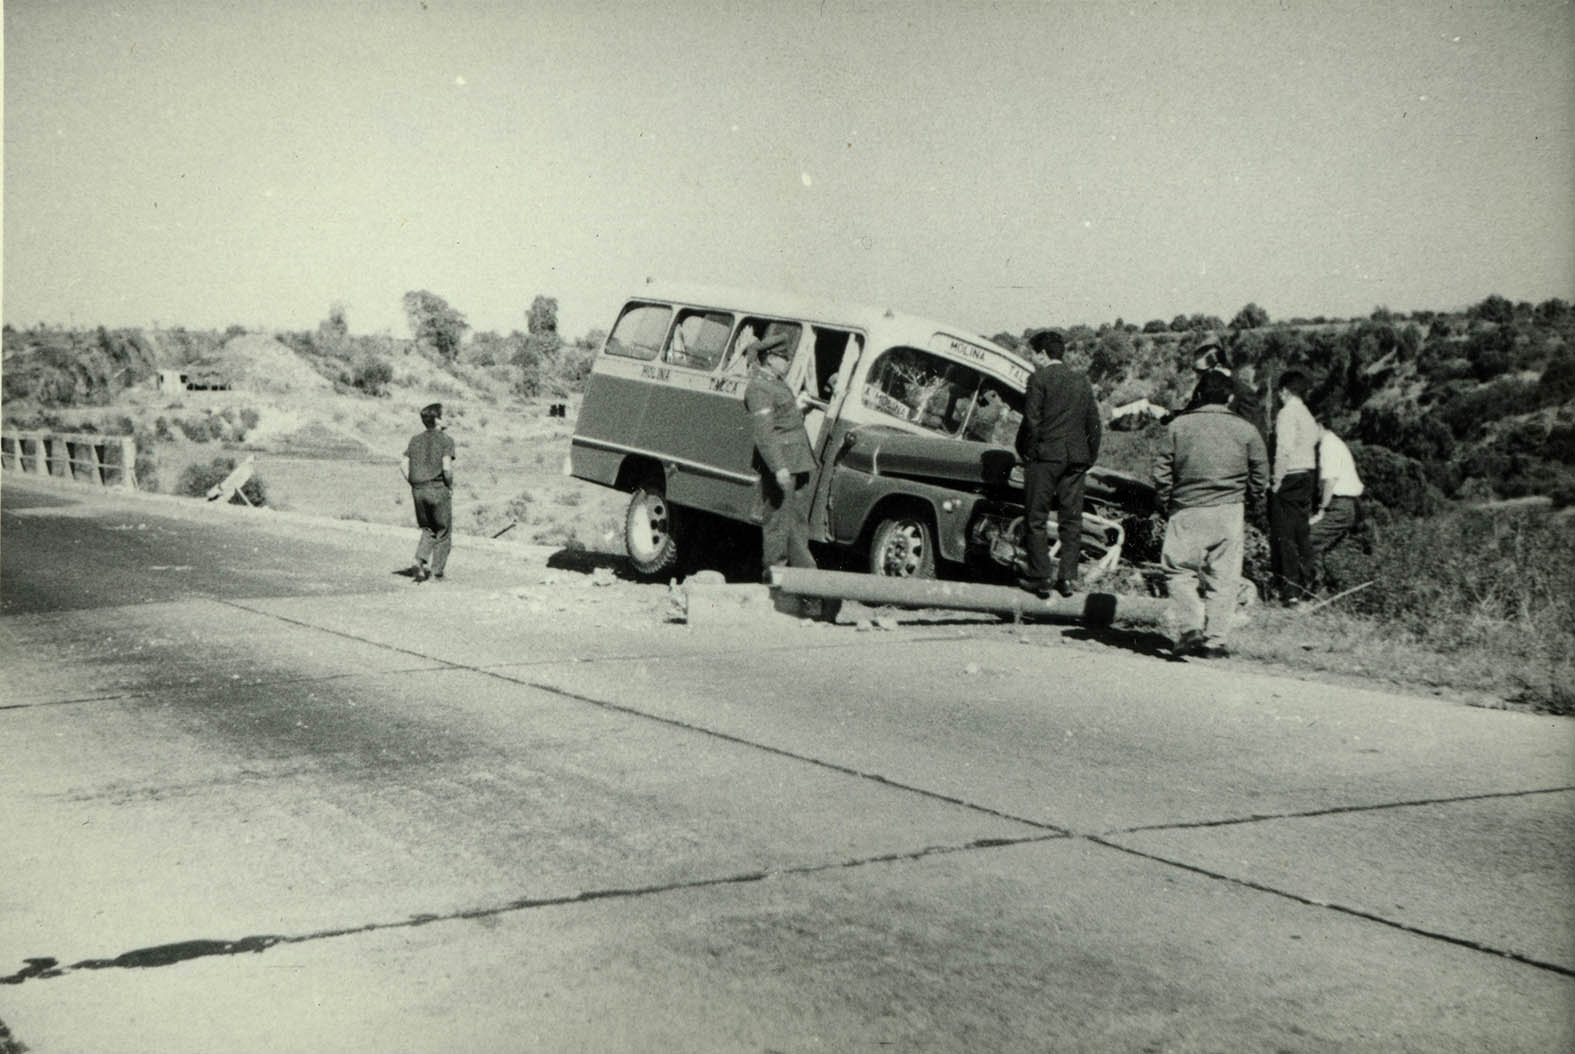 Enterreno - Fotos históricas de chile - fotos antiguas de Chile - Accidente Río Claro en 1964